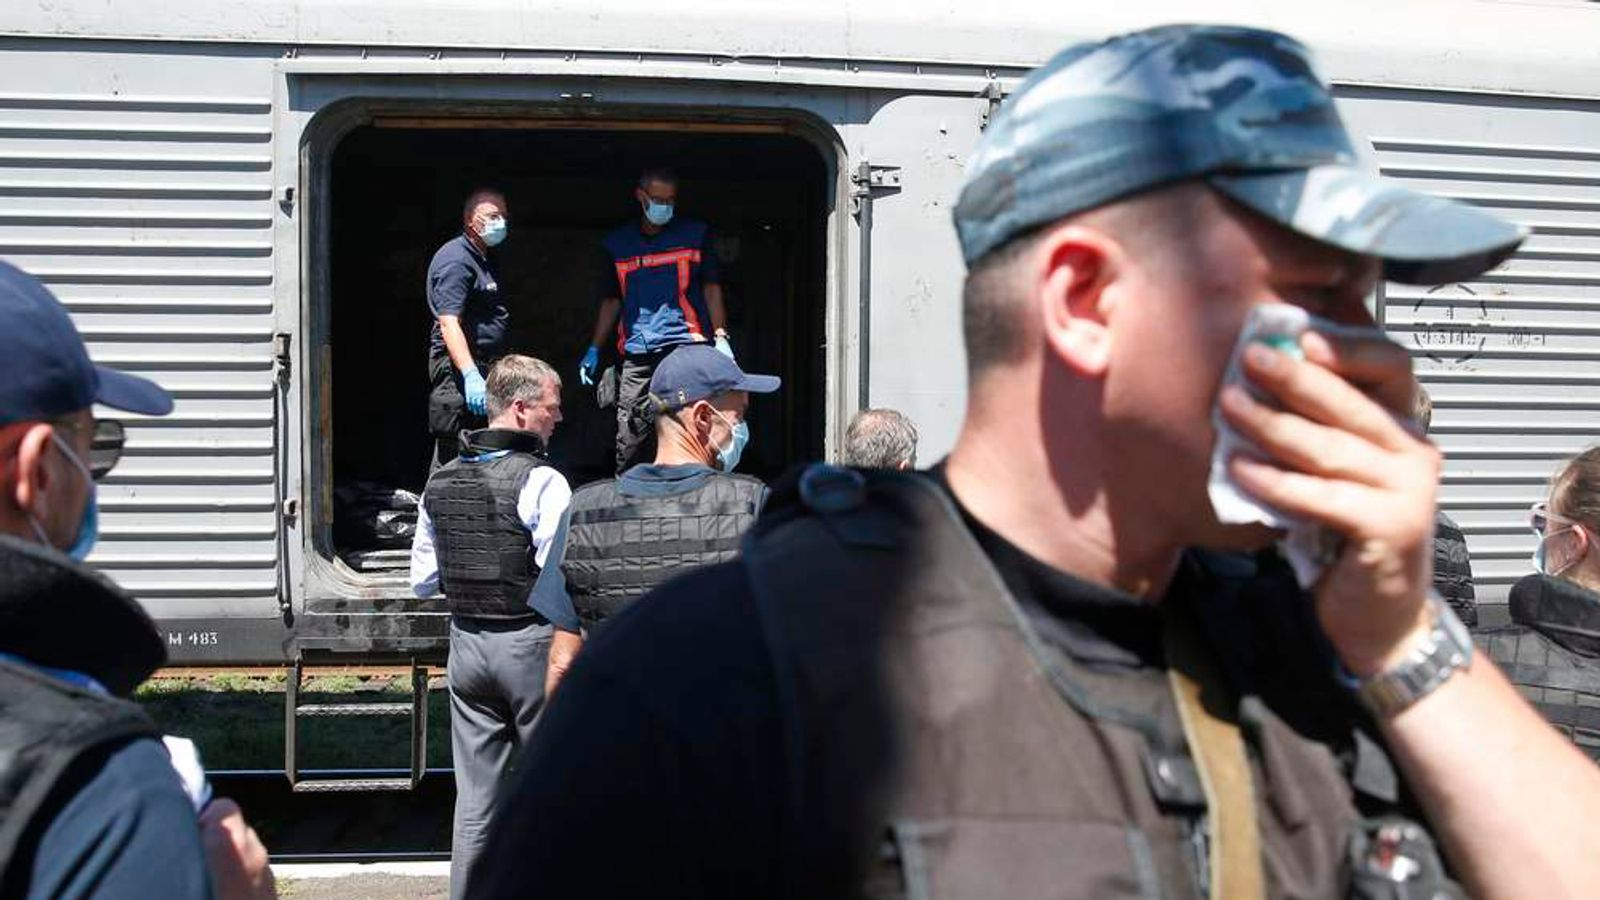 People surround a refrigerator wagon at a railway station in the eastern Ukrainian town of Torez